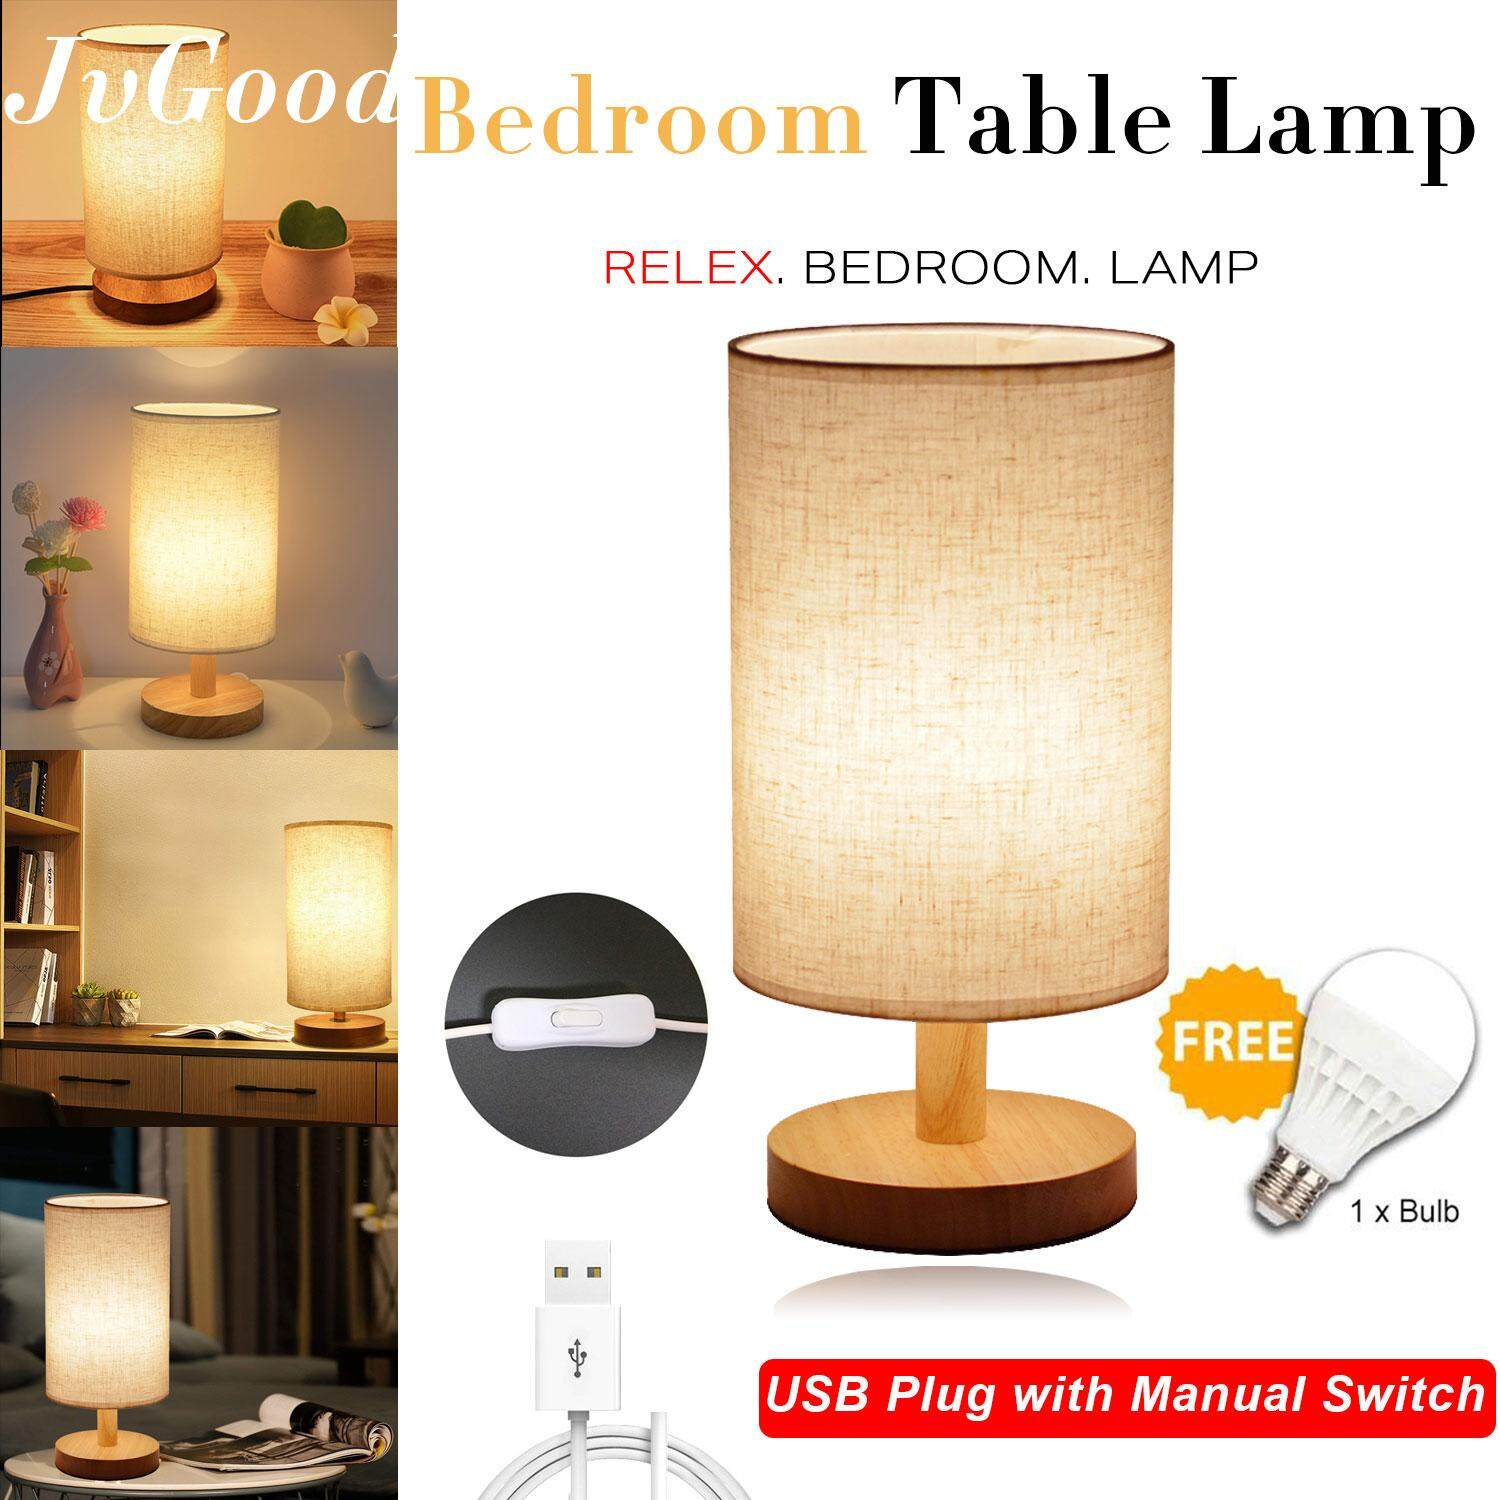 Harga Lampu Meja Hias Jvgood Lampu Meja Table Lamp Best Seller Soft Night Light Side Table Lamp With 1 8m Usb Line And Free 5v Bulb